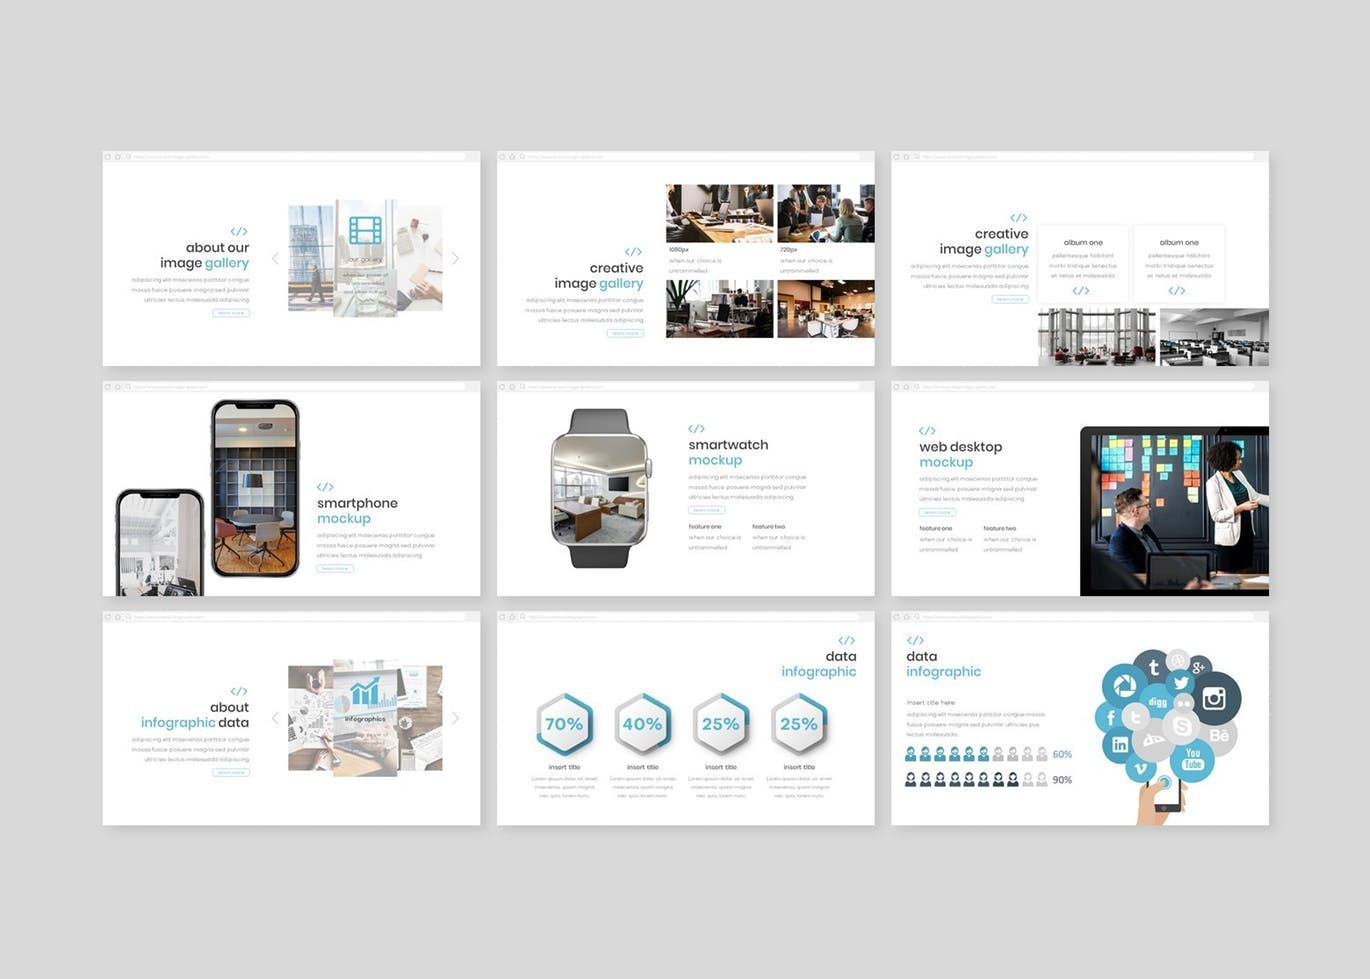 Syntax - PowerPoint Template, Slide 4, 08307, Presentation Templates — PoweredTemplate.com